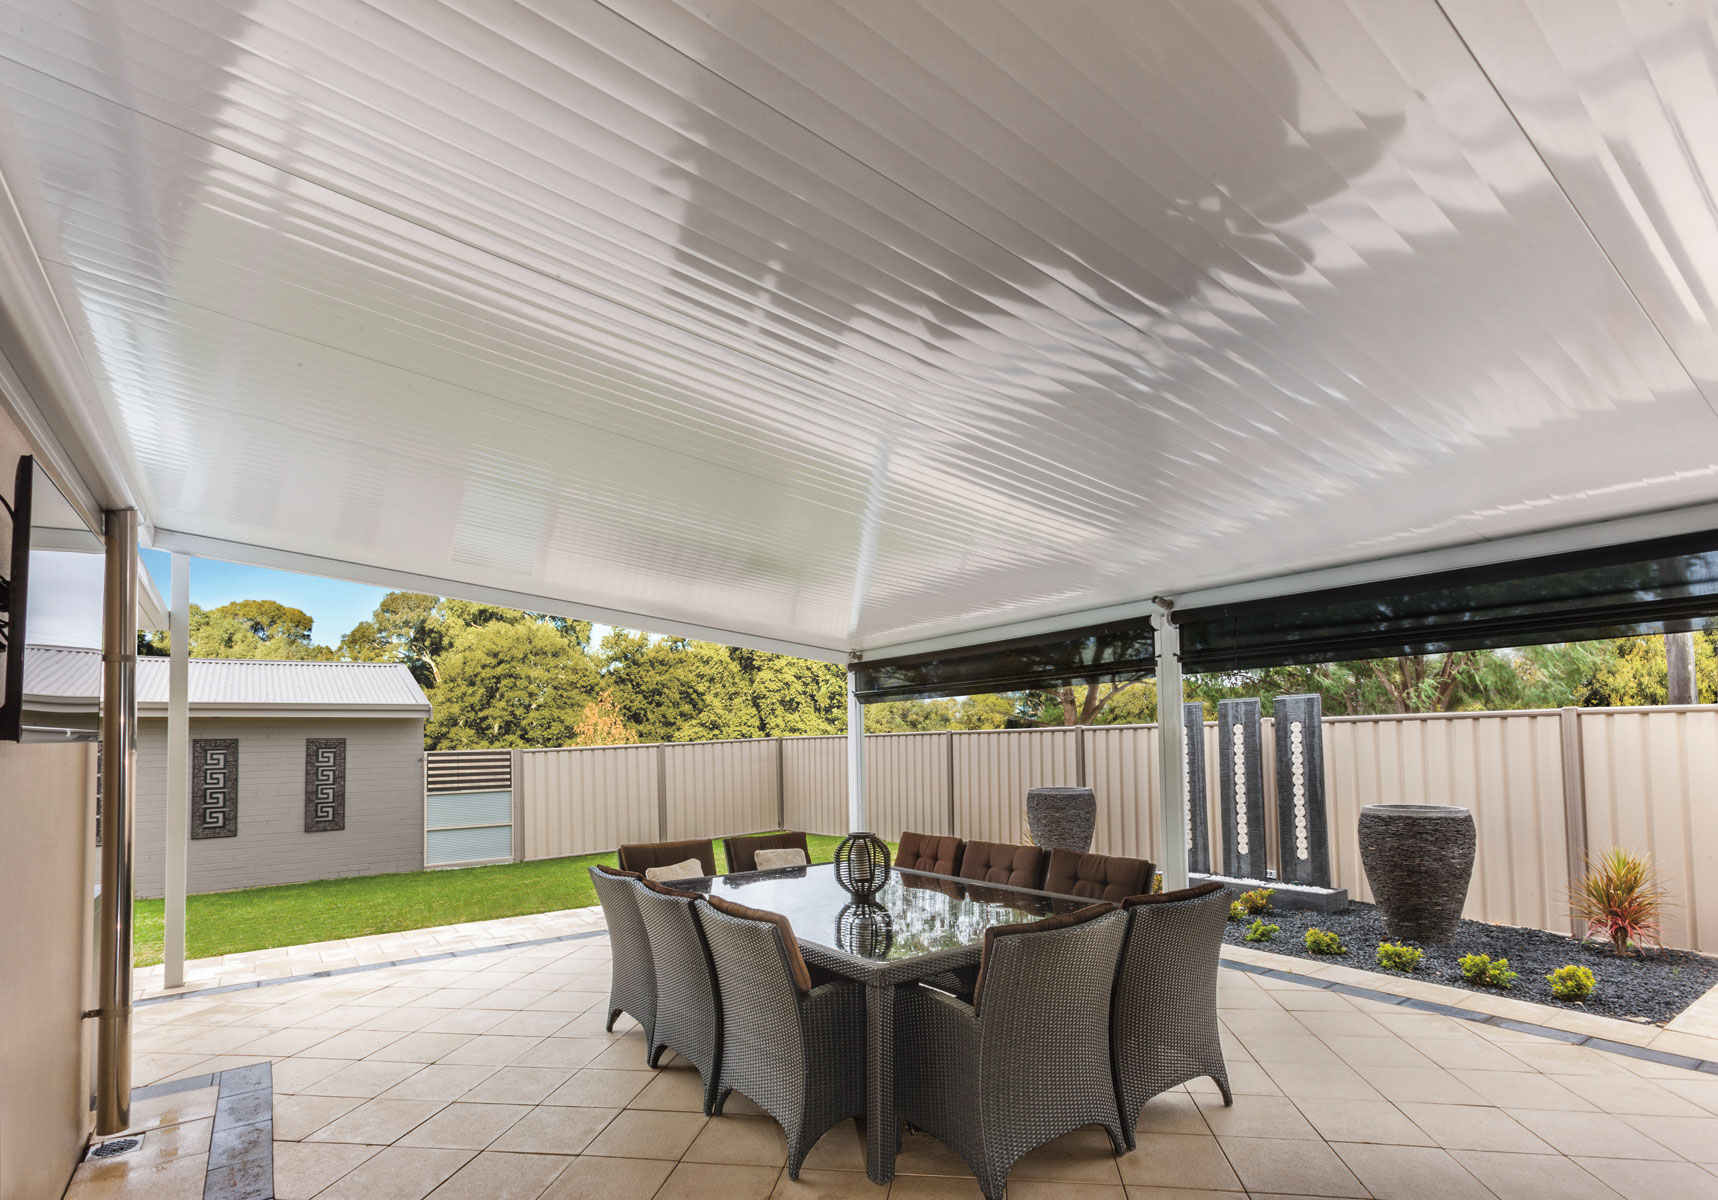 Cooldek Insulated Patio Roofing Panels